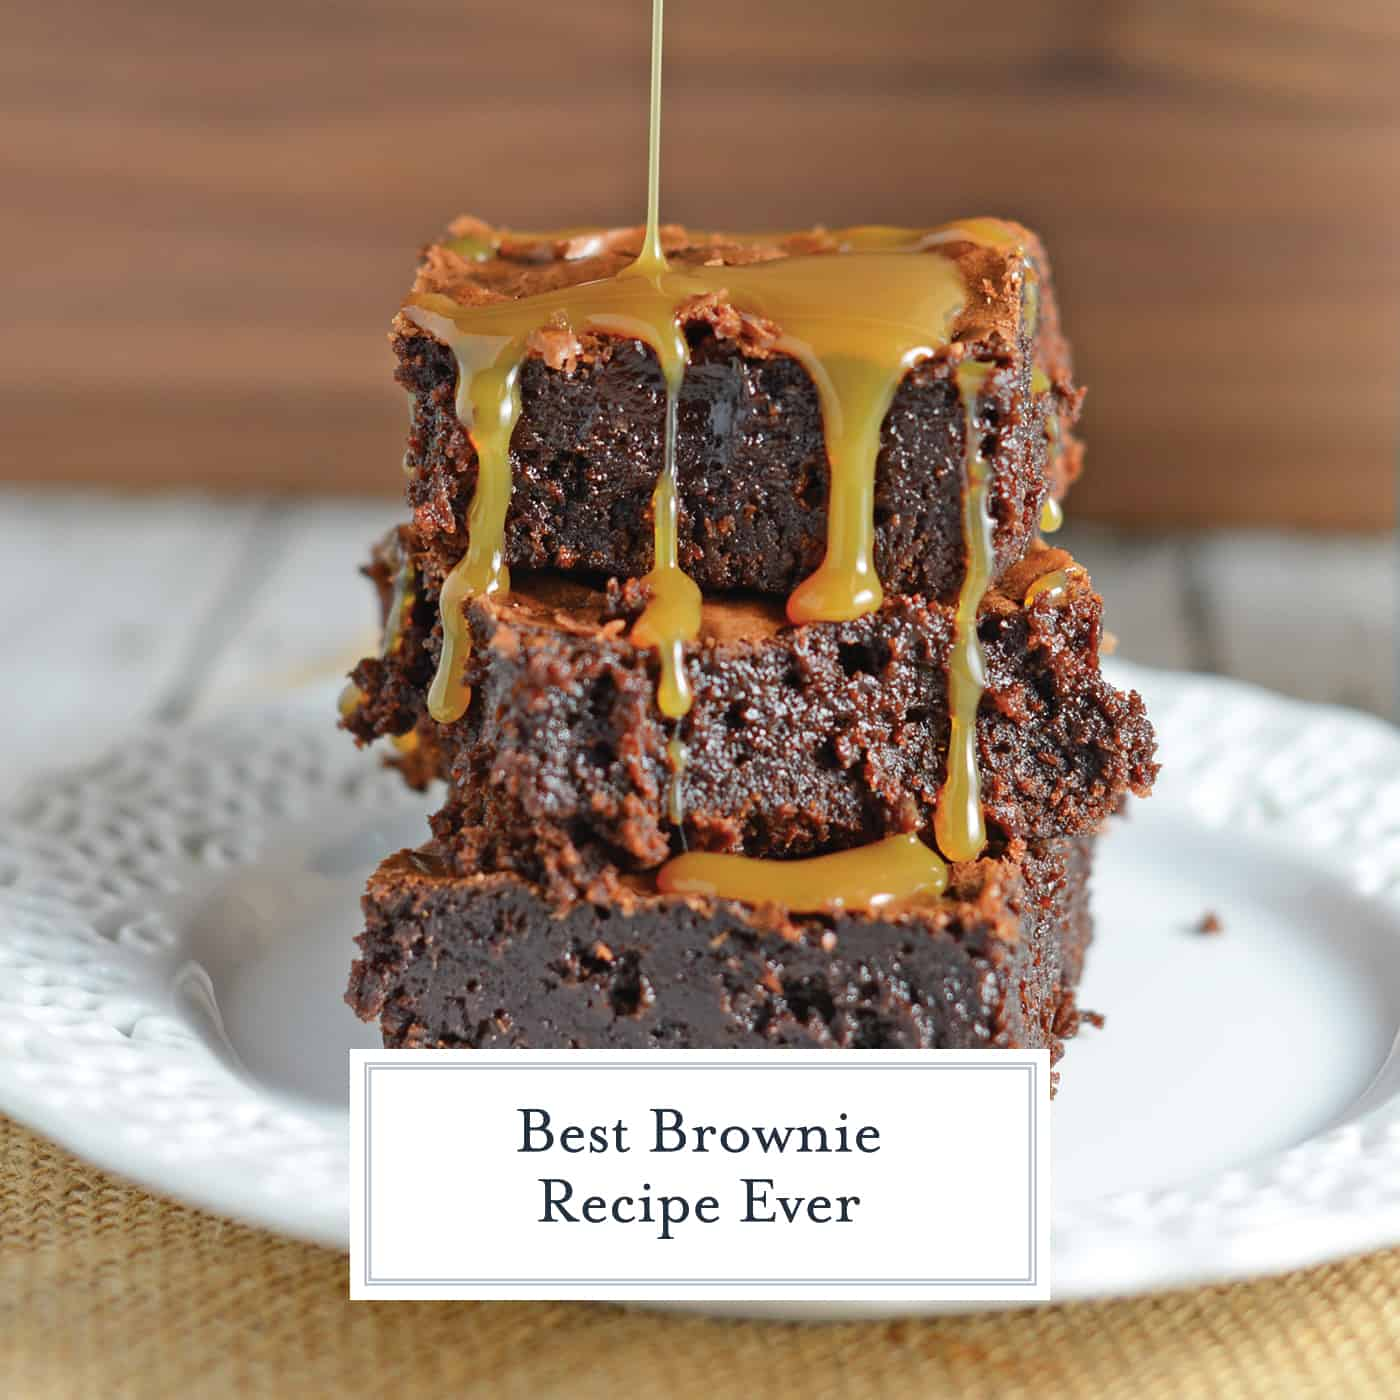 The Best Brownie Recipe ever makes basic fudgy brownies from scratch. Add caramel and salt for sweet and salty brownie goodness. #browniesfromscratch #bestbrownierecipe www.savoryexperiments.com